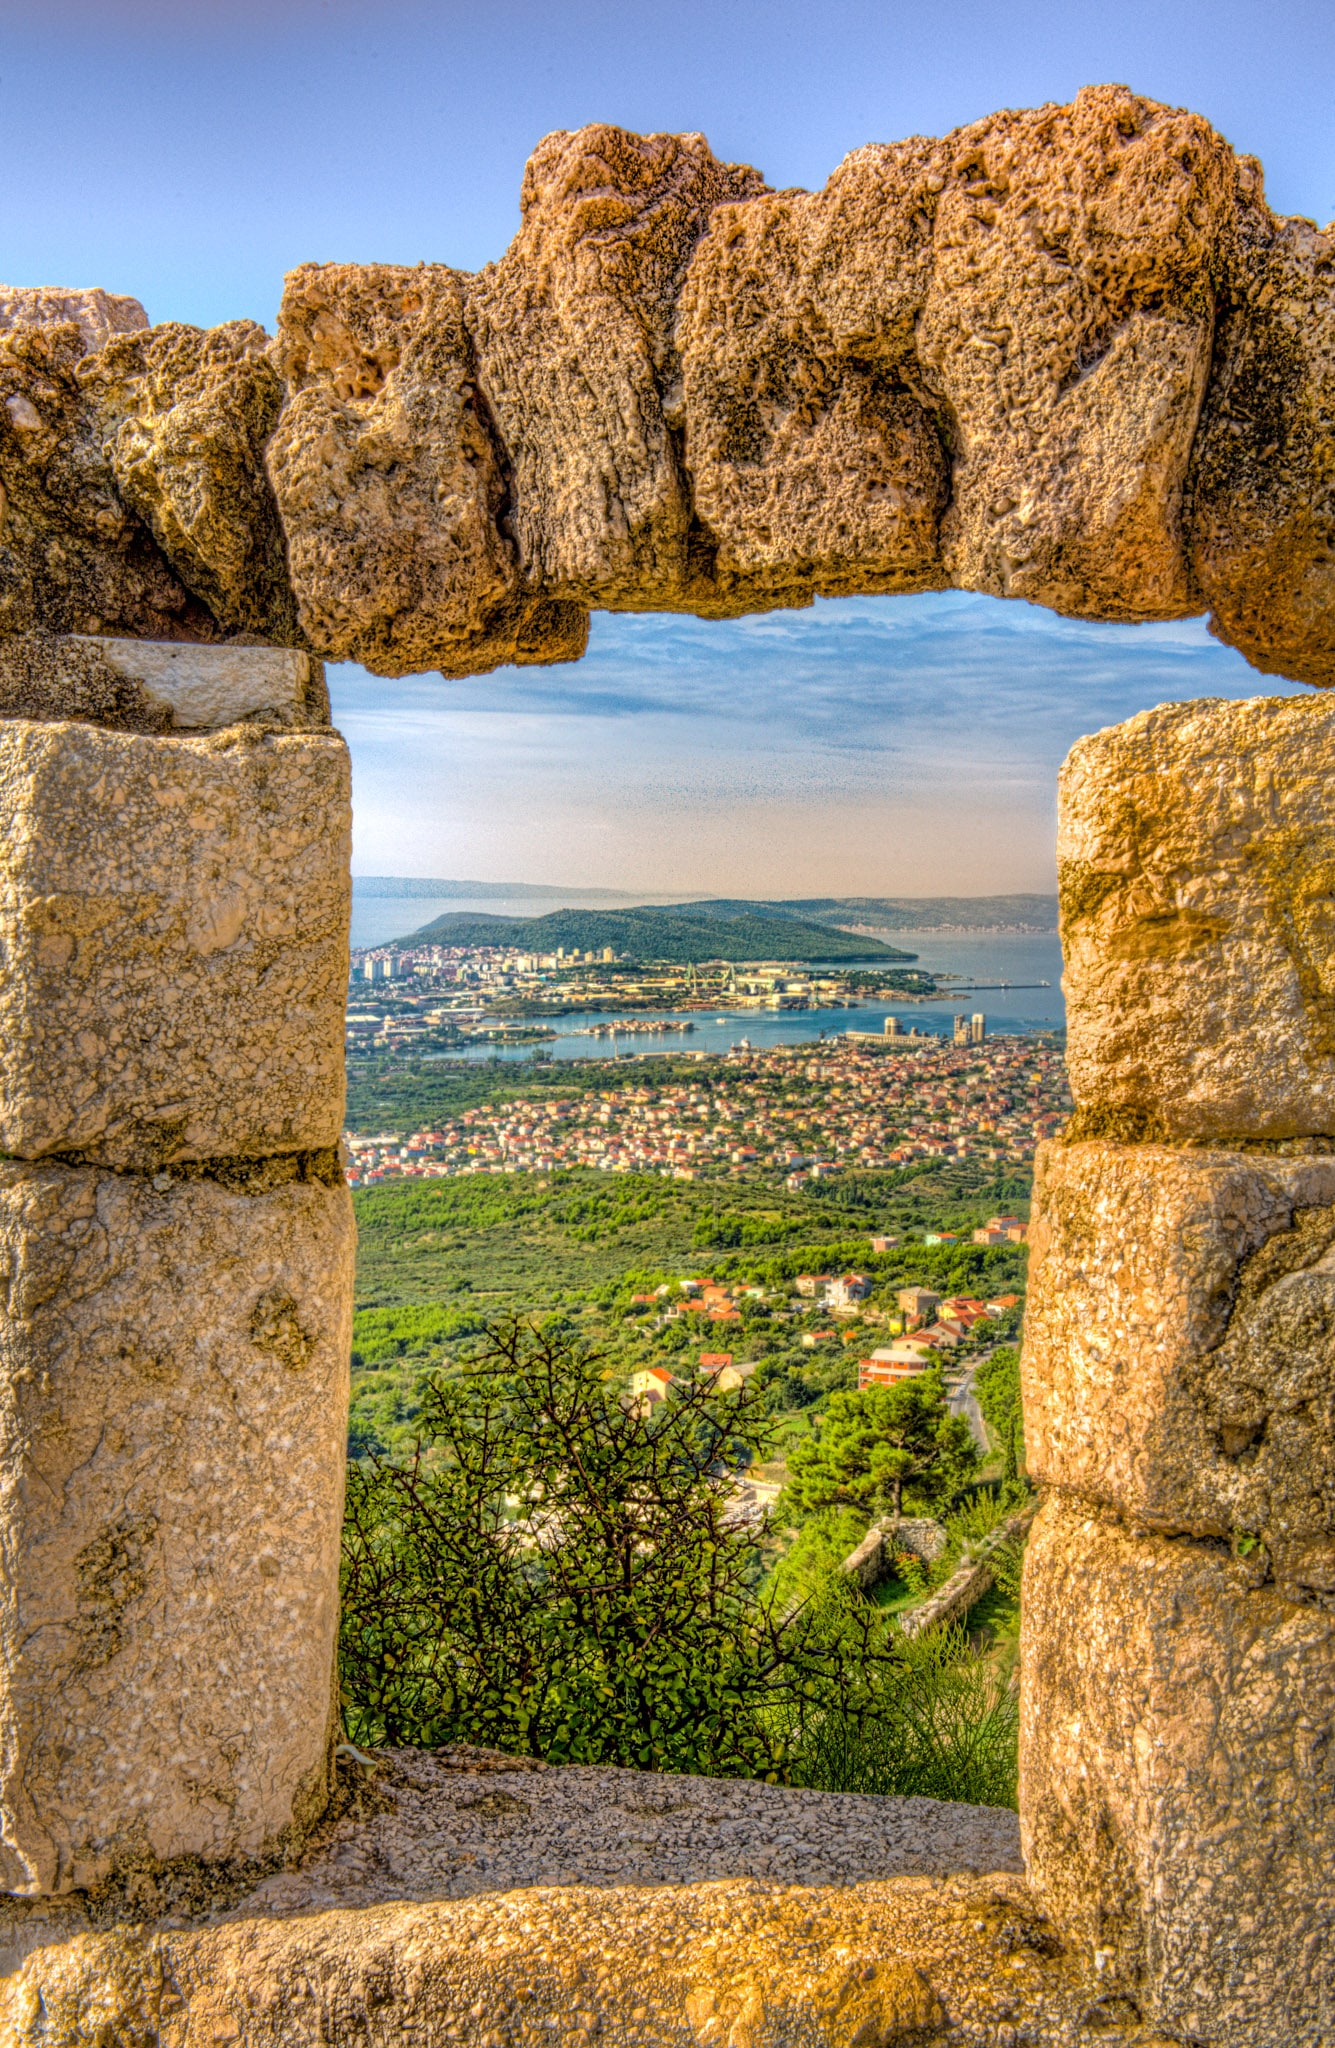 The Croatian city of Split is framed through an opening in the fortification walls of Klis Fortress.